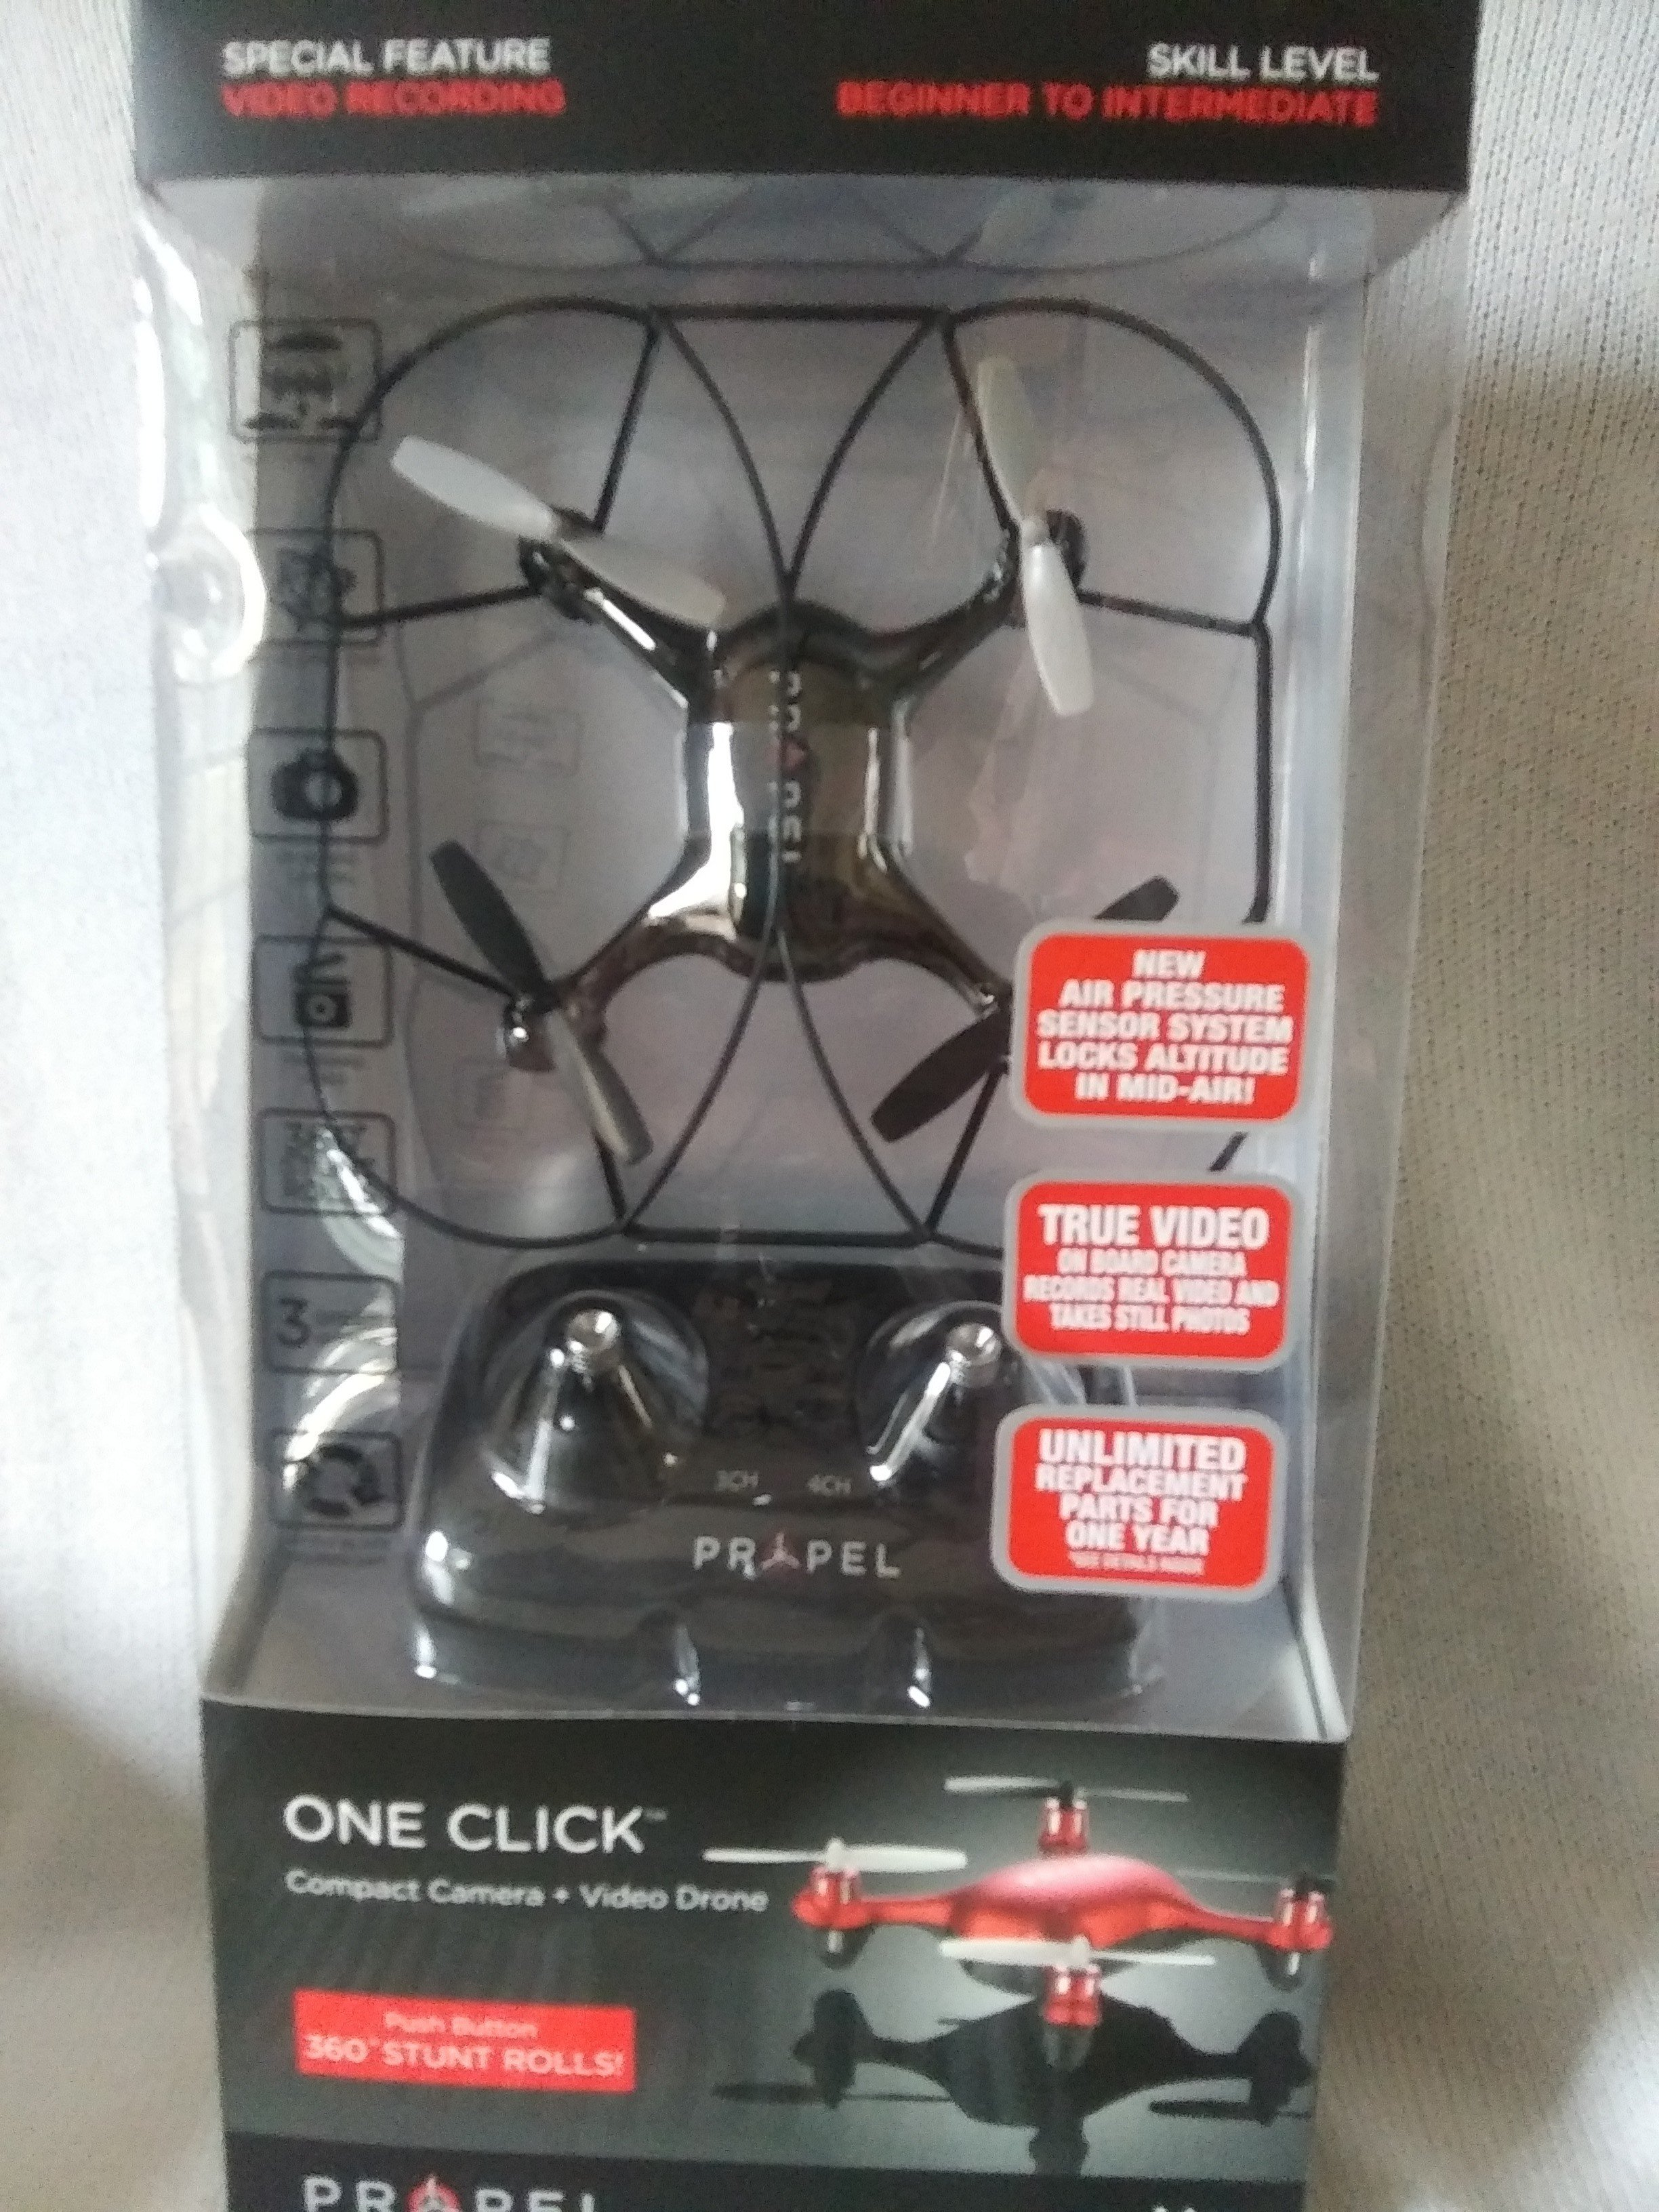 One Click Camera and Video Drone Image